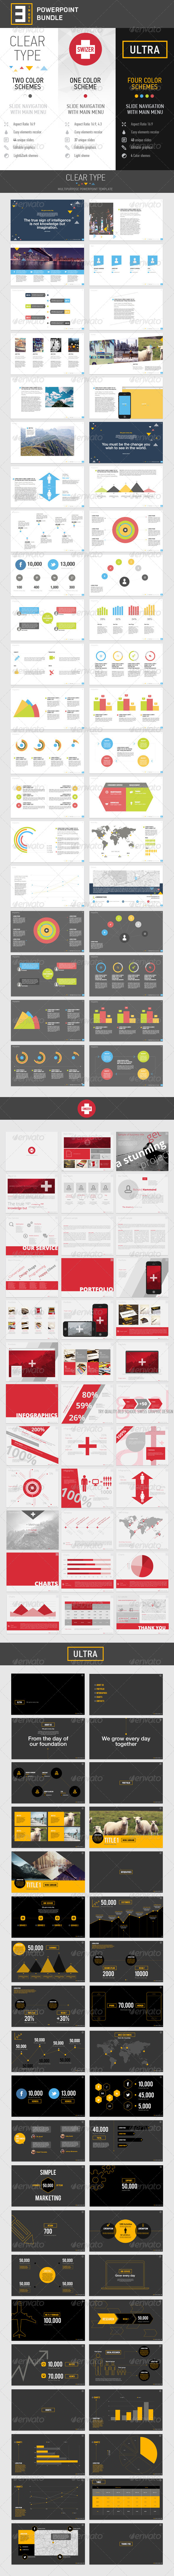 GraphicRiver 3-in-1 PowerPoint Bundle 7721814